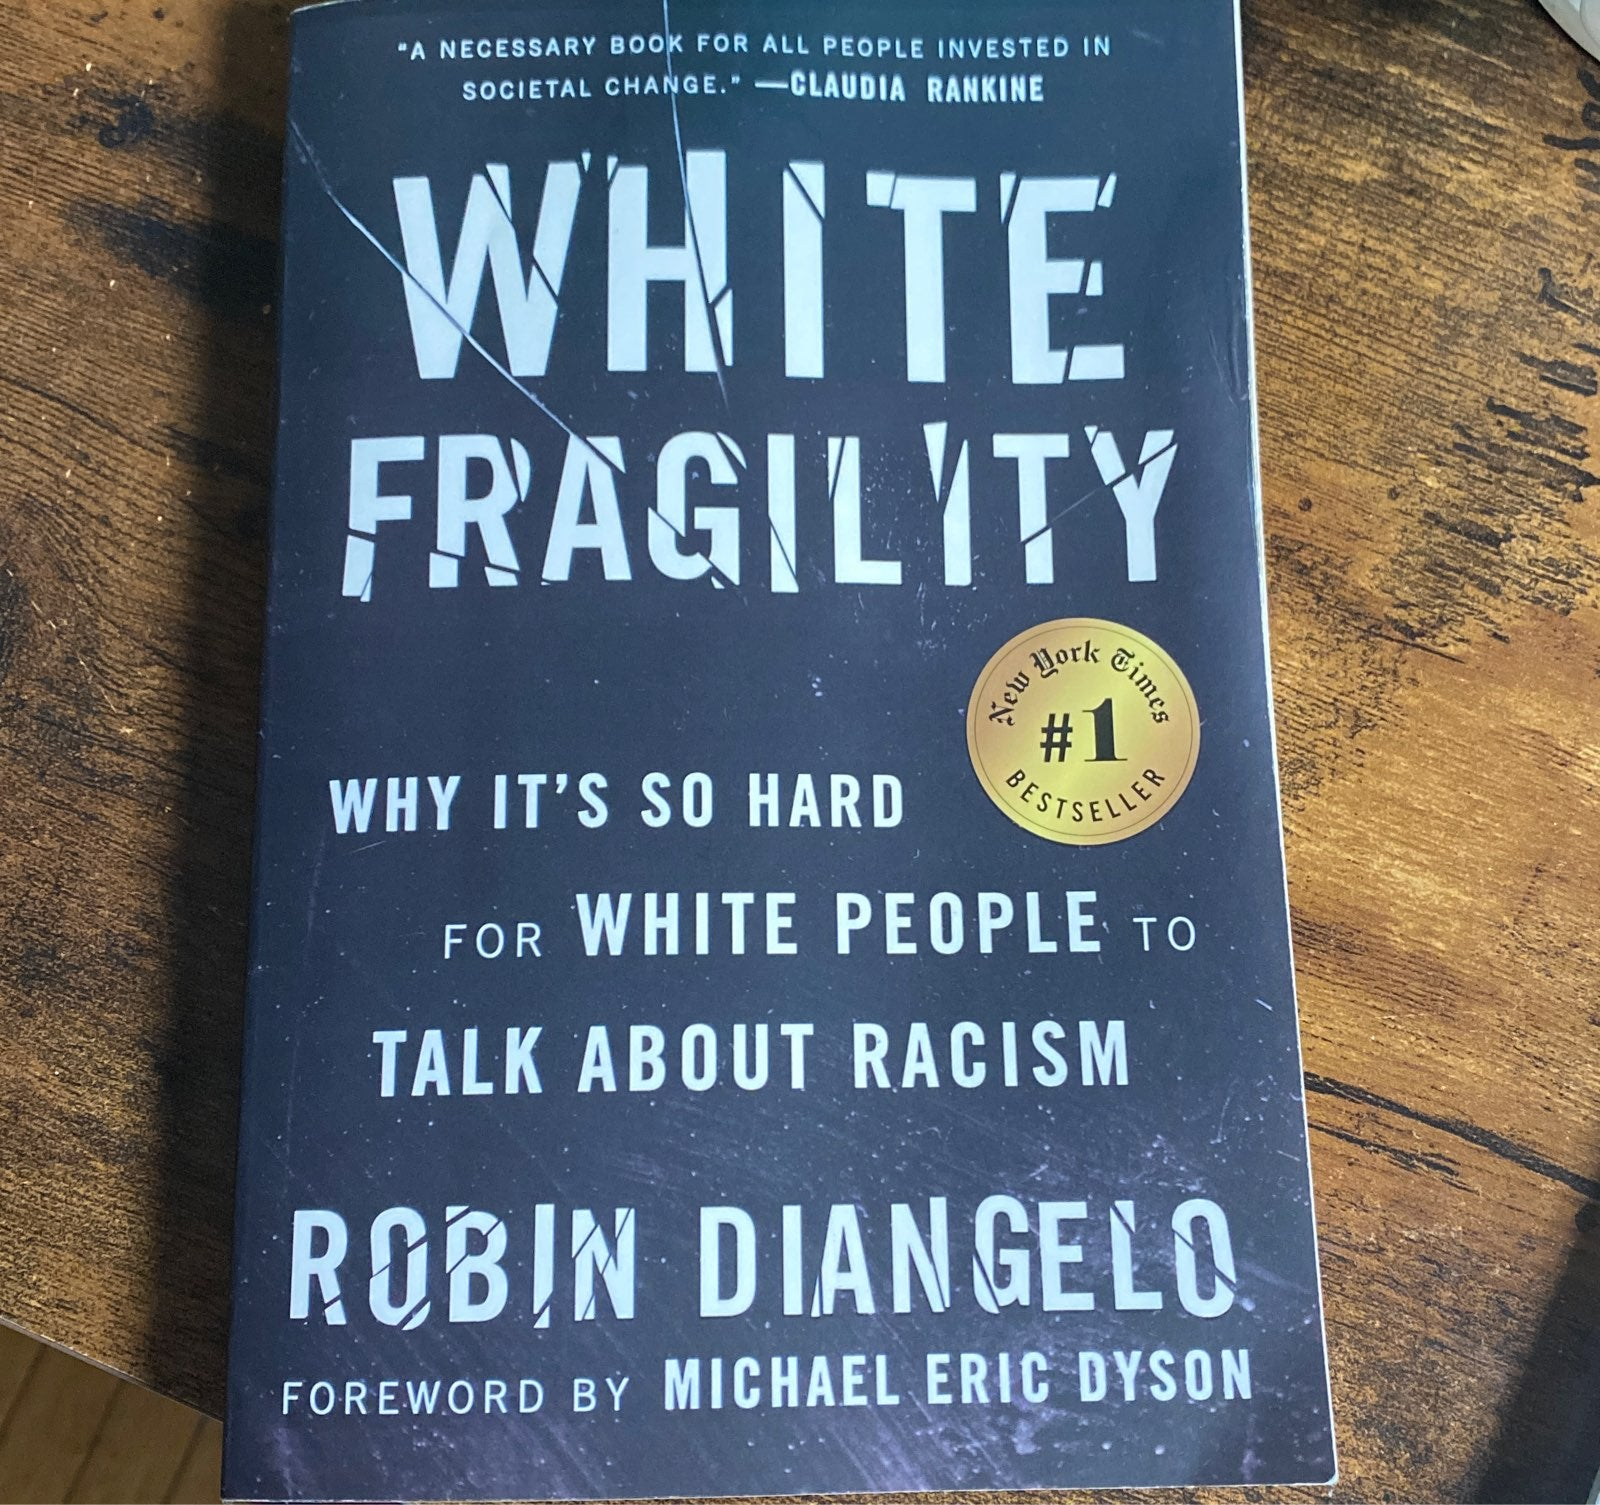 White Fragility Book by Robin DiAngelo